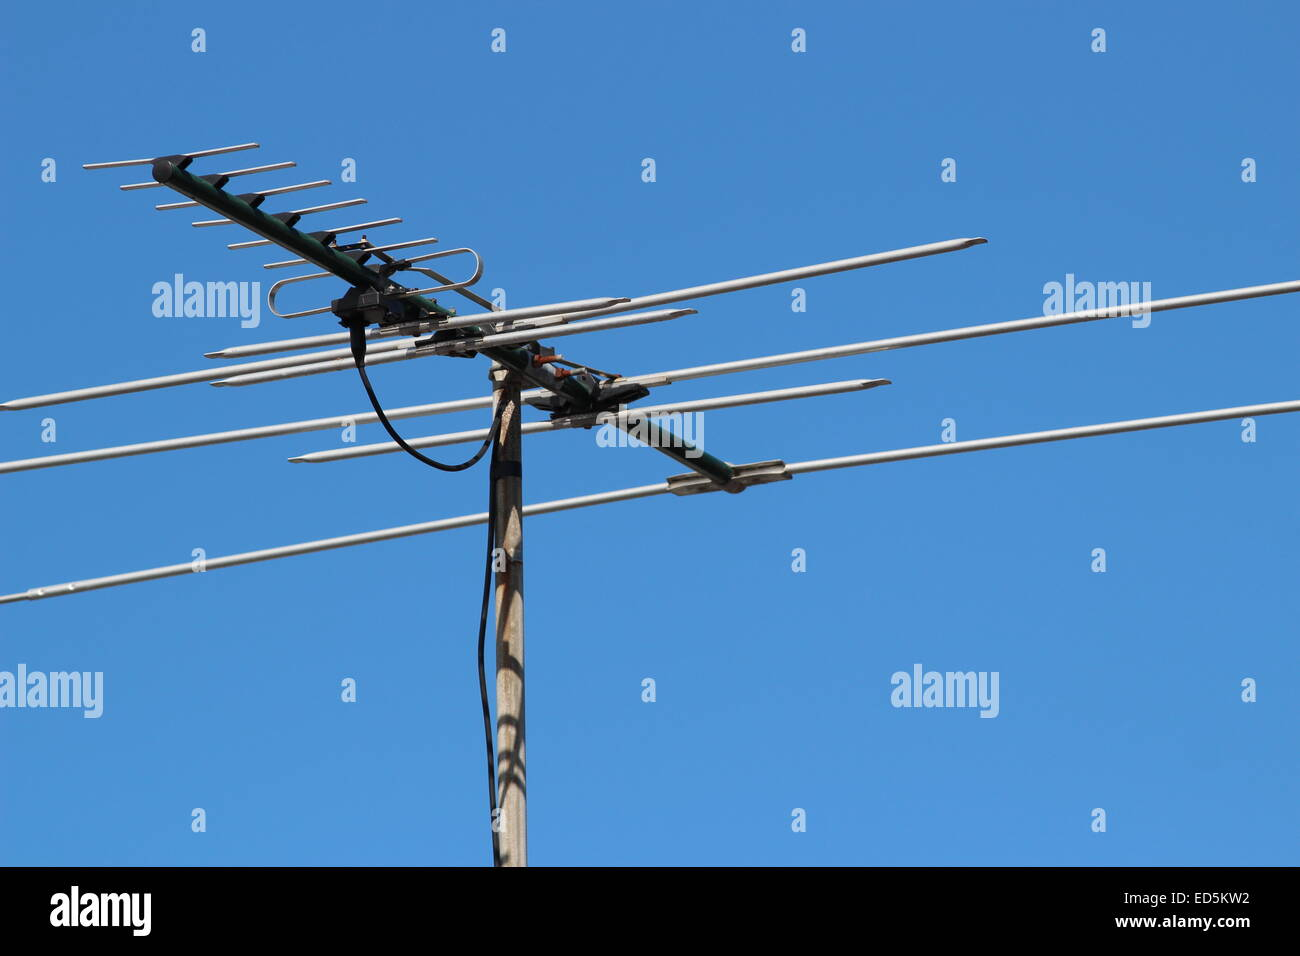 Tv Antenna Stock Photos Images Alamy Wire Diagram Television Against Blue Sky Image